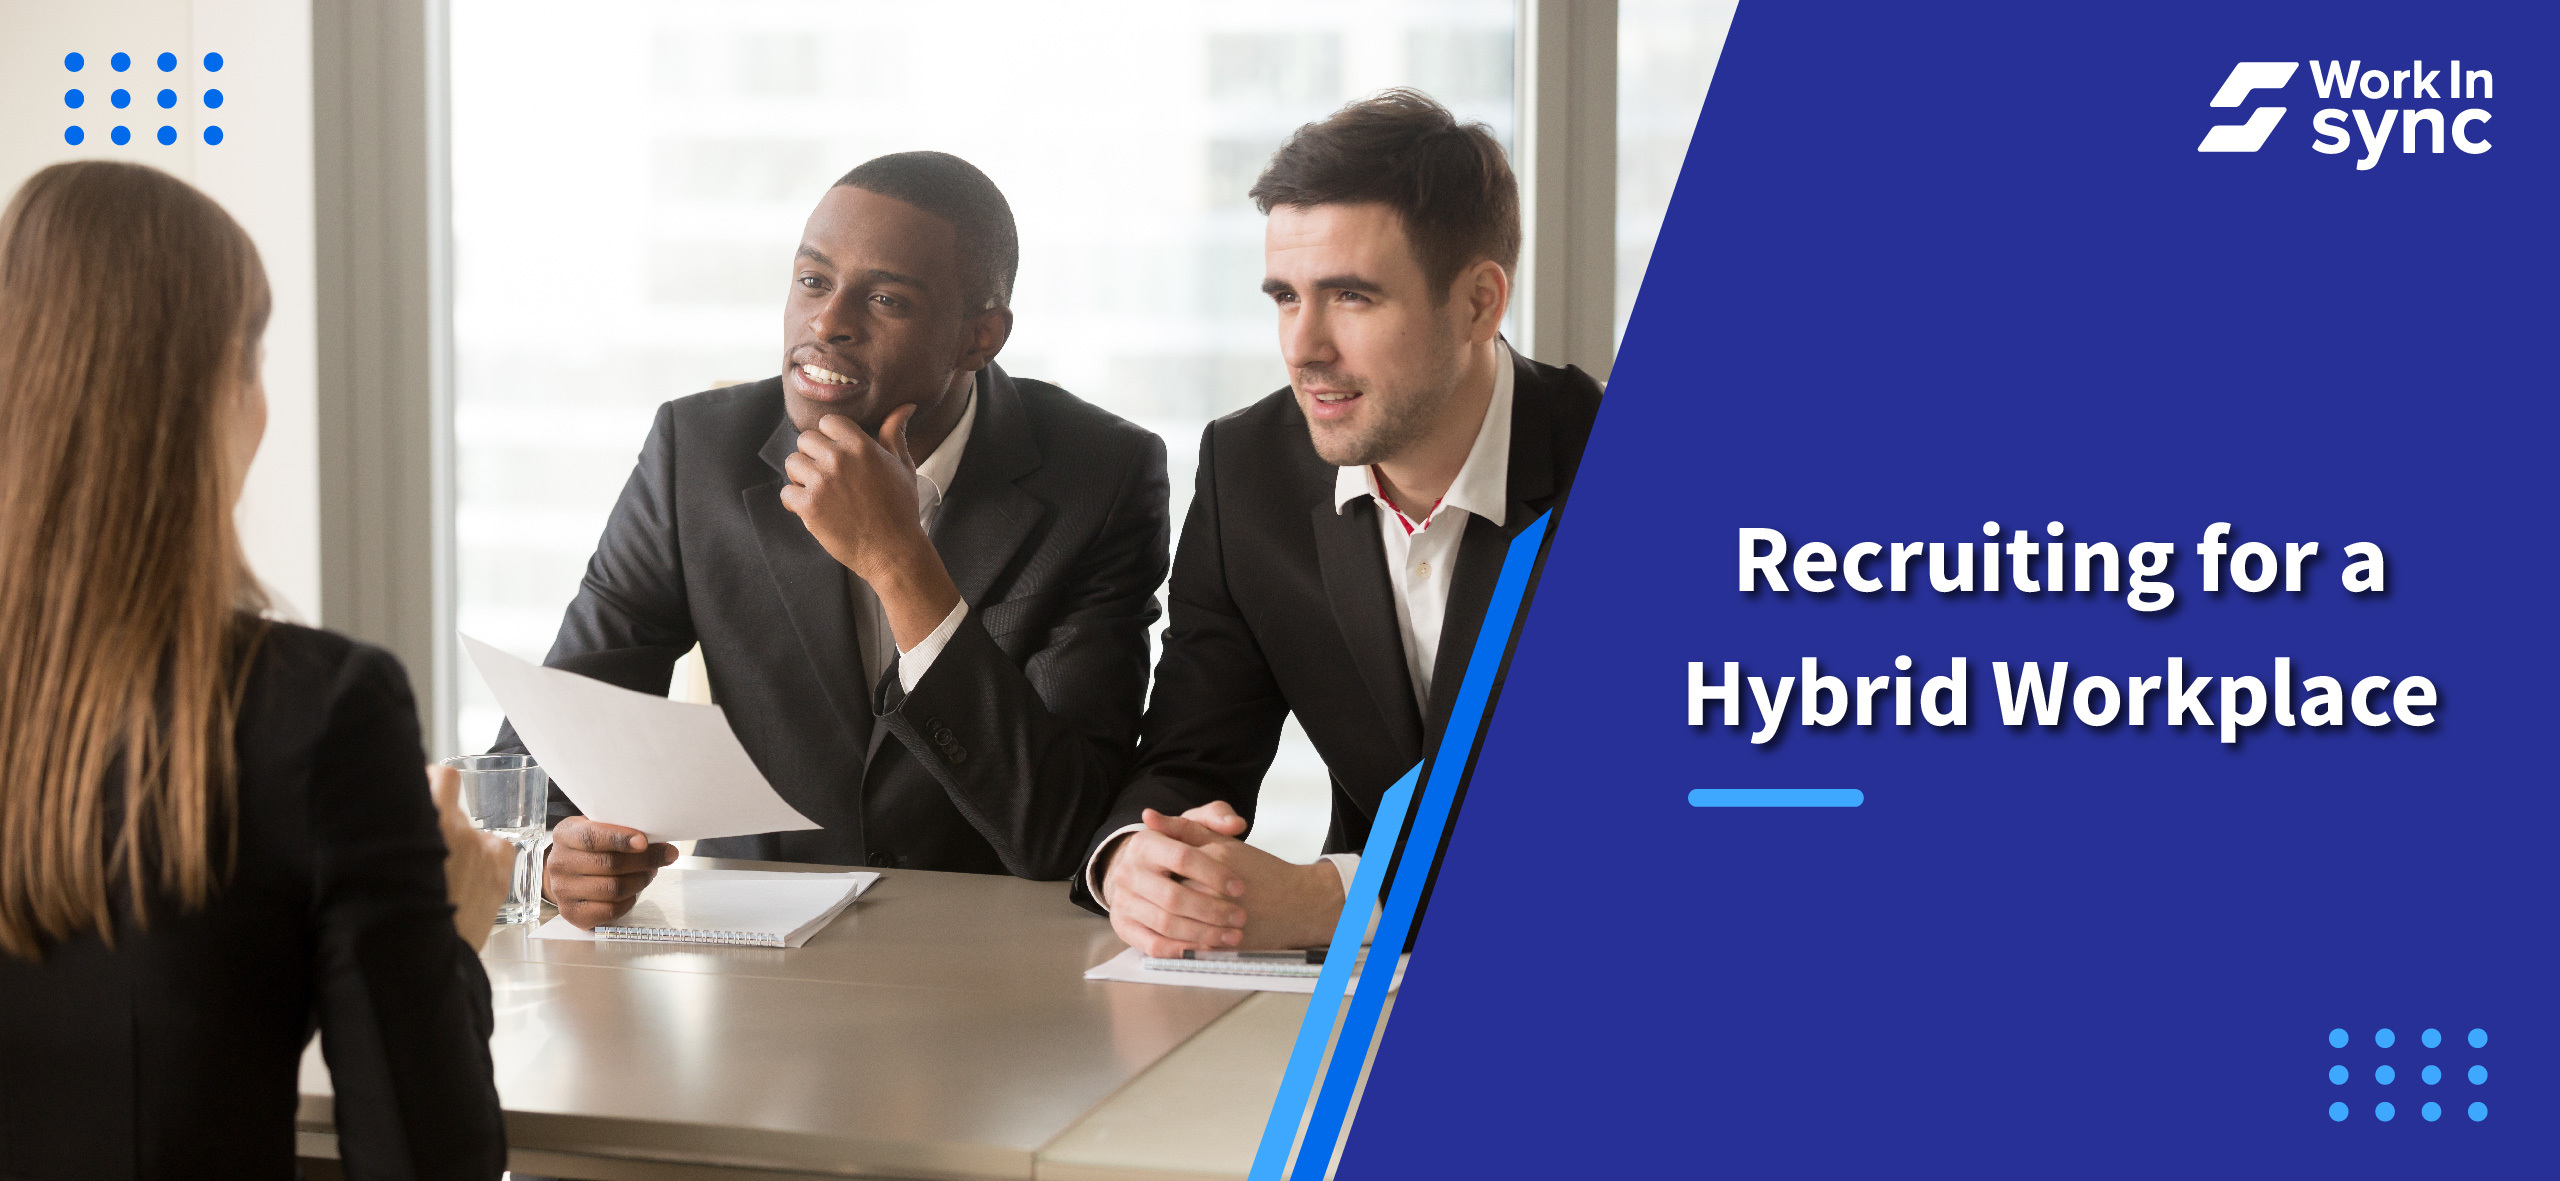 Recruiting for a Hybrid Workplace